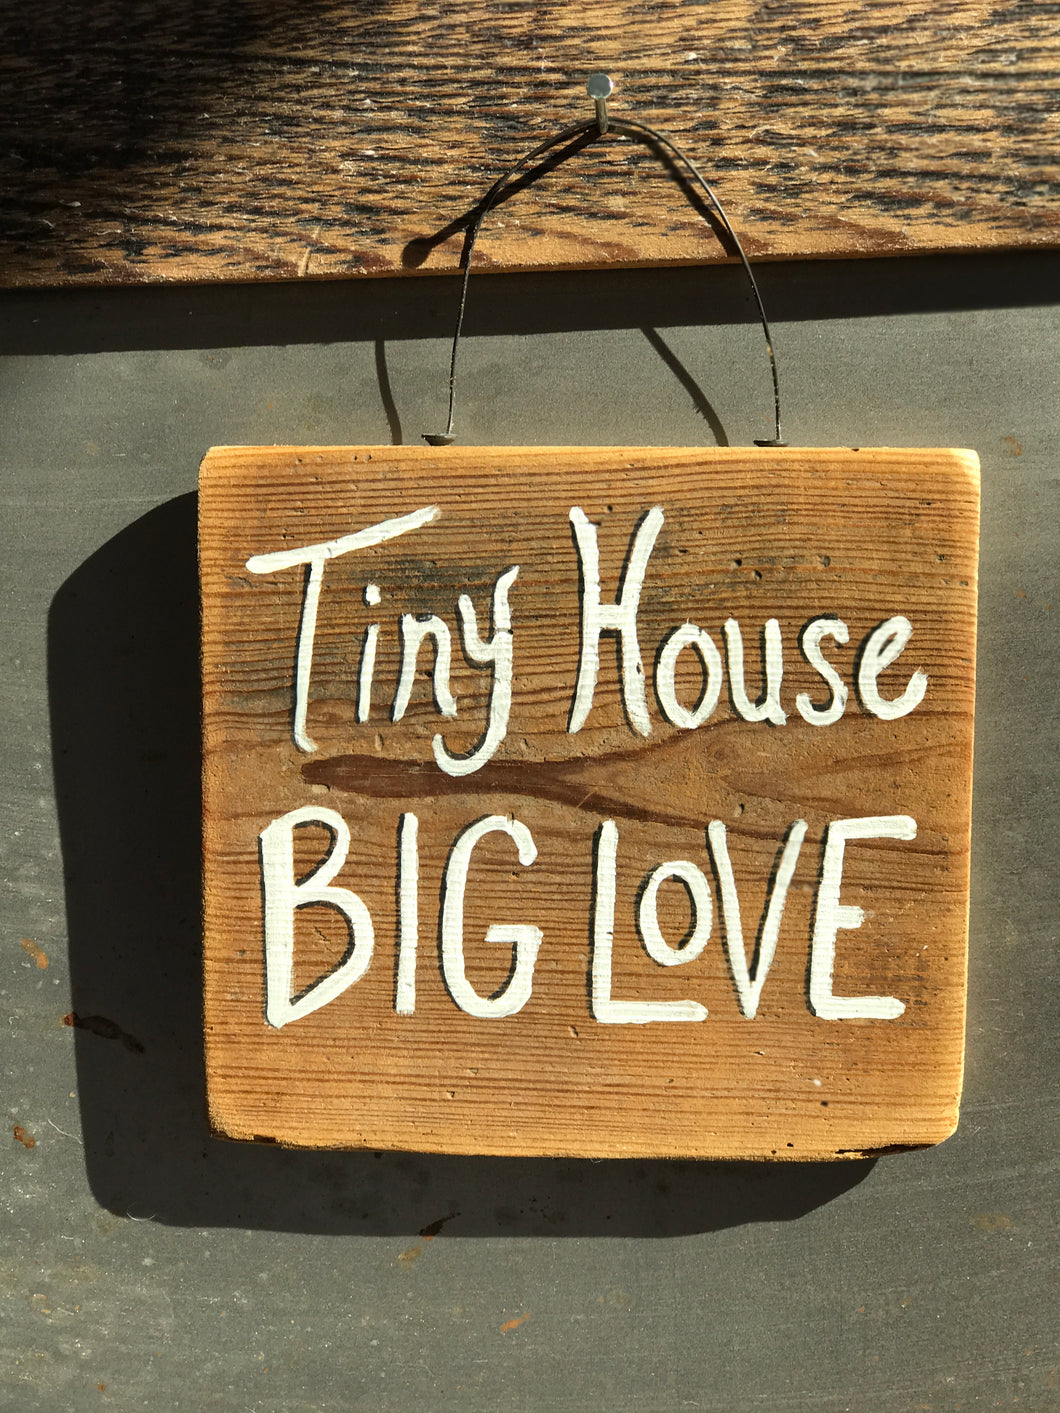 Tiny House Big Love / Upcycled Hand-painted Wood Sign